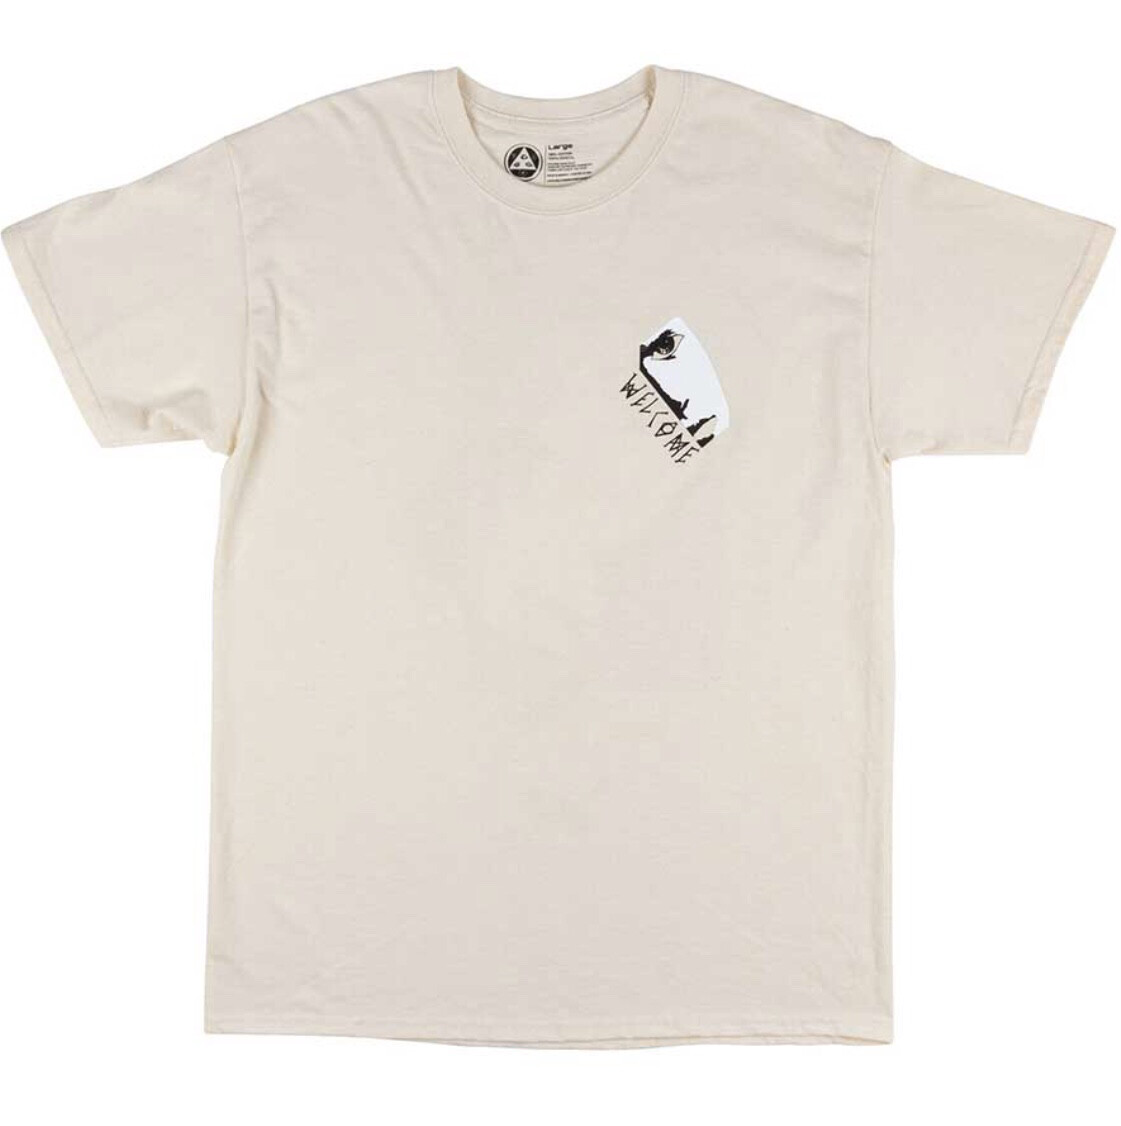 Welcome Skateboards Faces Tee - Bone (Large)